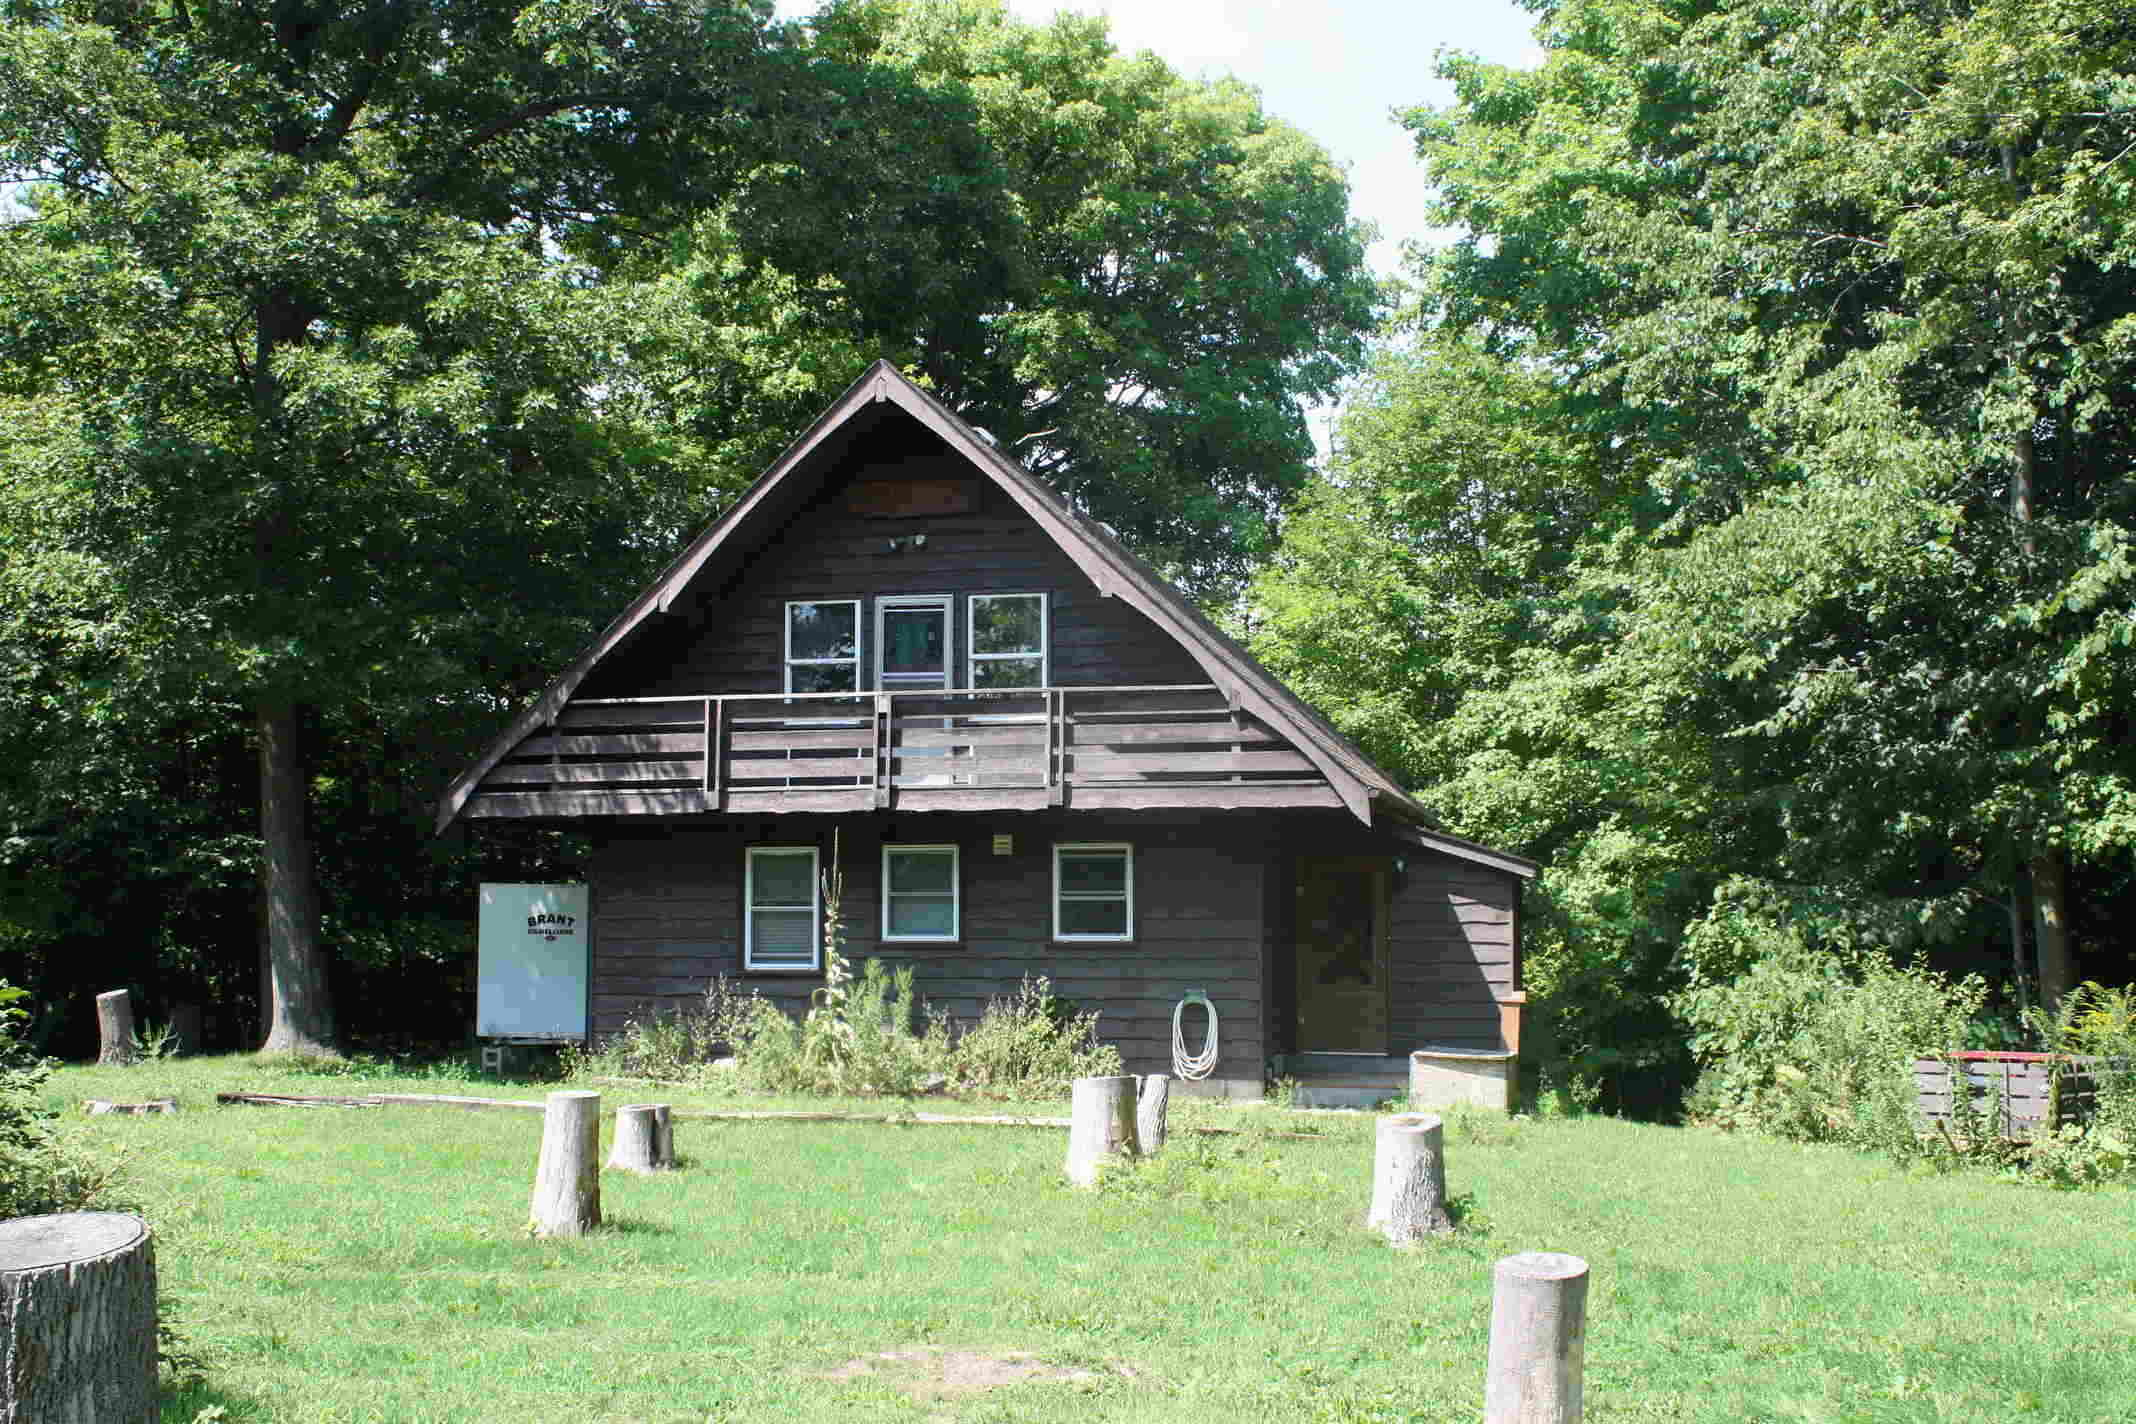 Major R.J. Black's Cabin